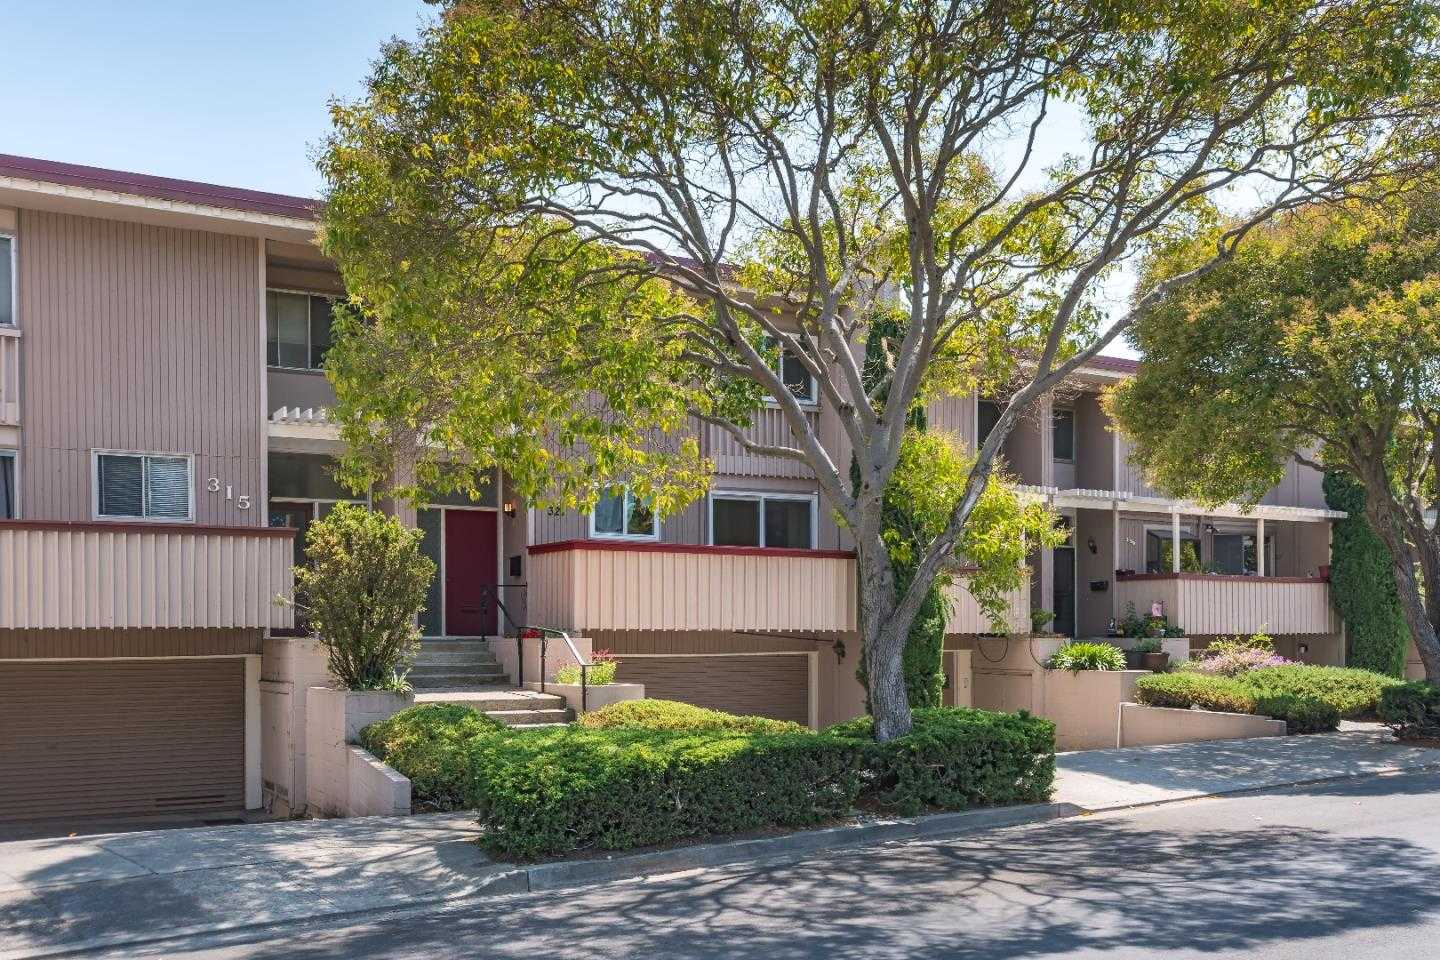 $1,149,000 - 3Br/3Ba -  for Sale in Redwood City